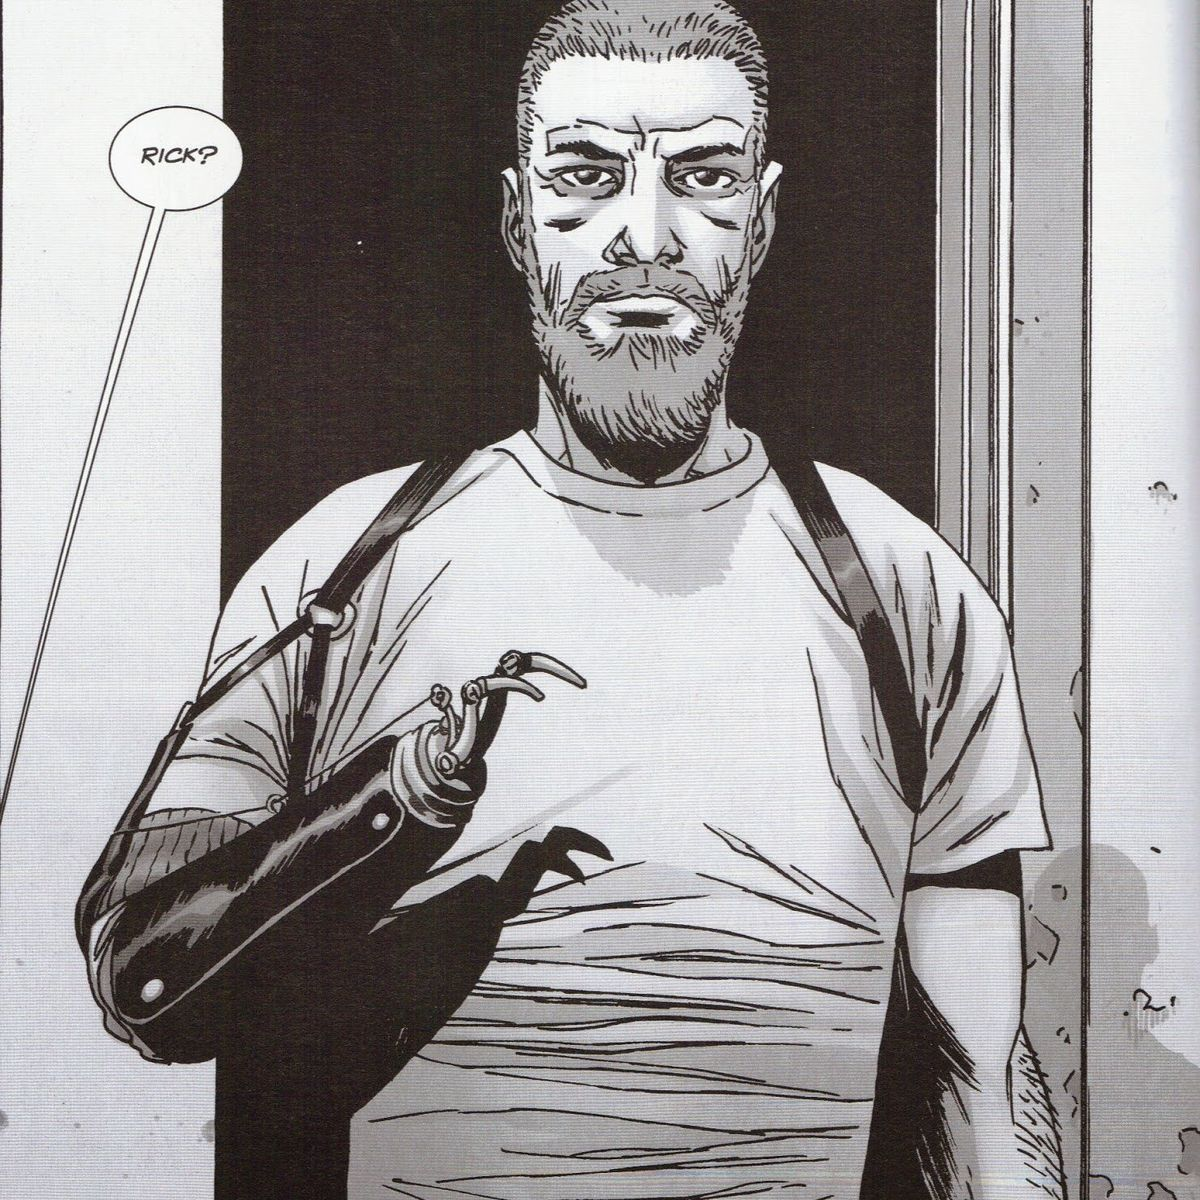 wait-rick-grimes-himself-voted-to-have-his-hand-cut-off-648896.jpg